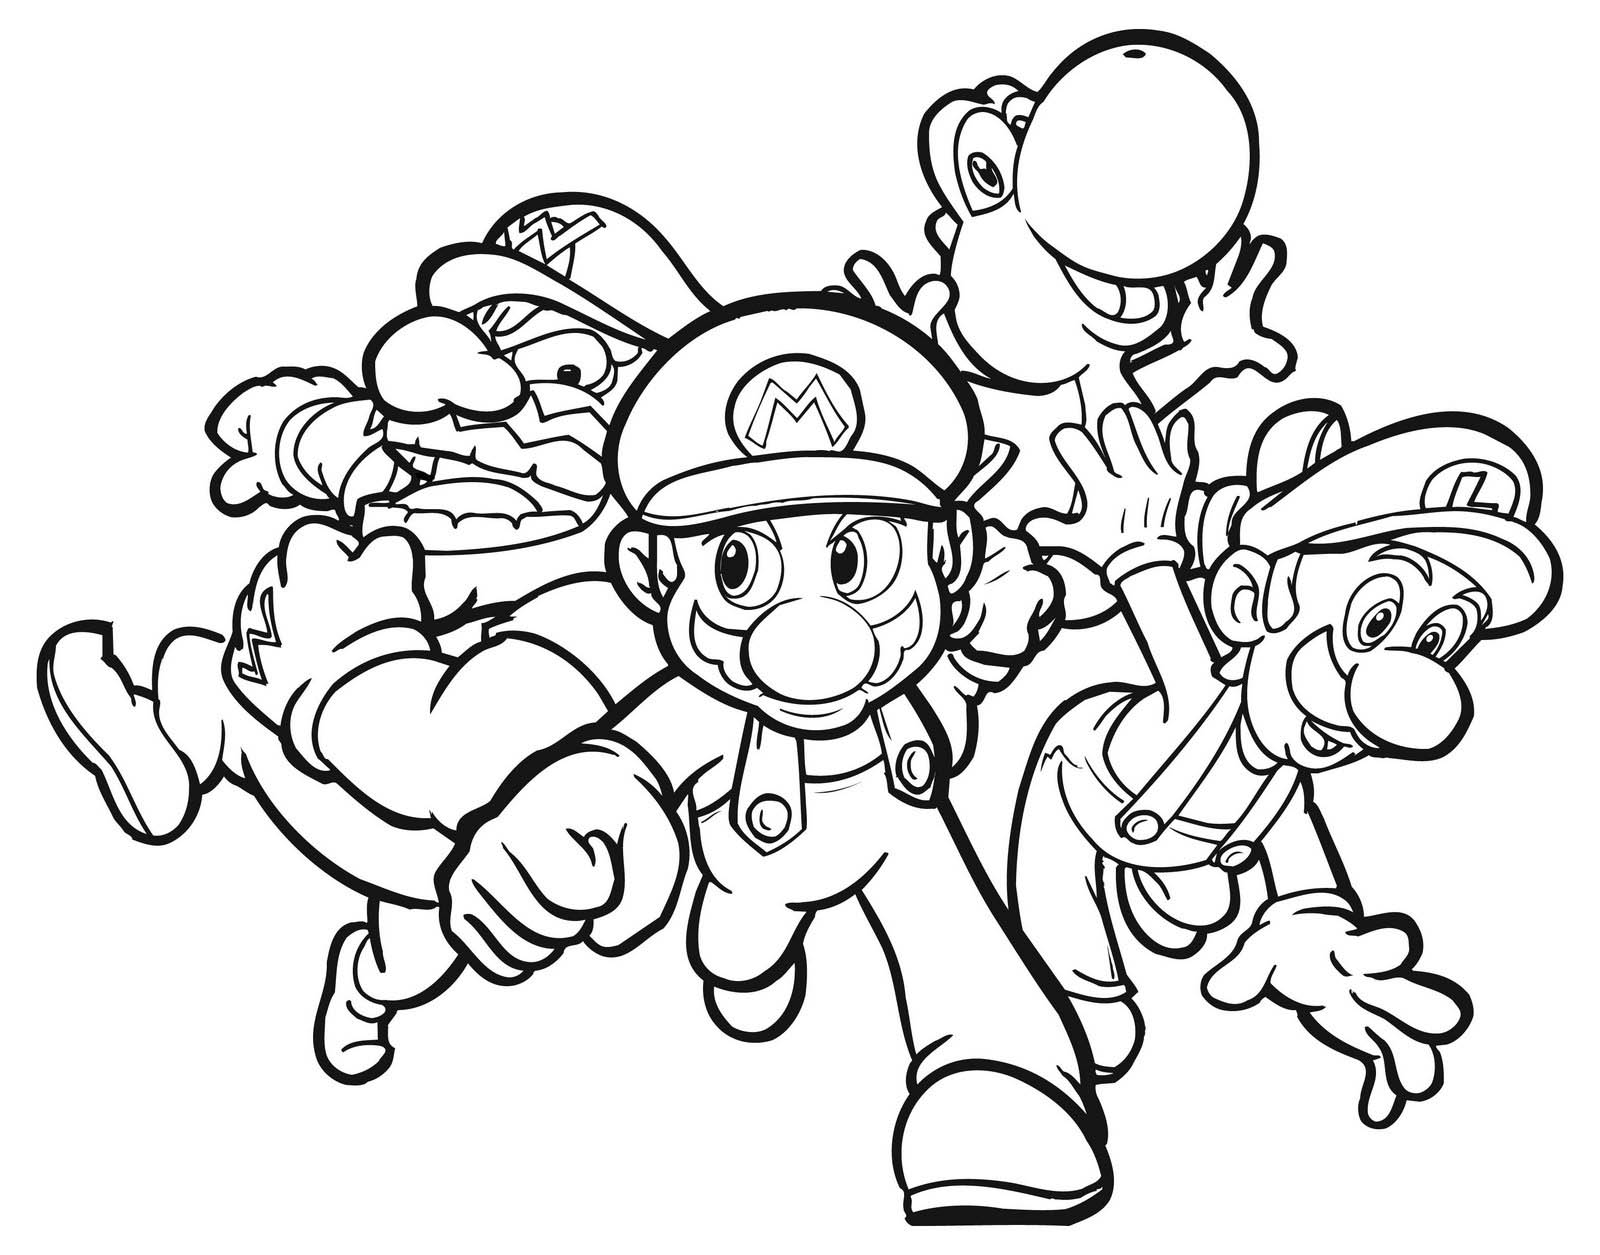 Clip Art Super Mario Printable Coloring Pages free printable mario coloring pages for kids bros pages